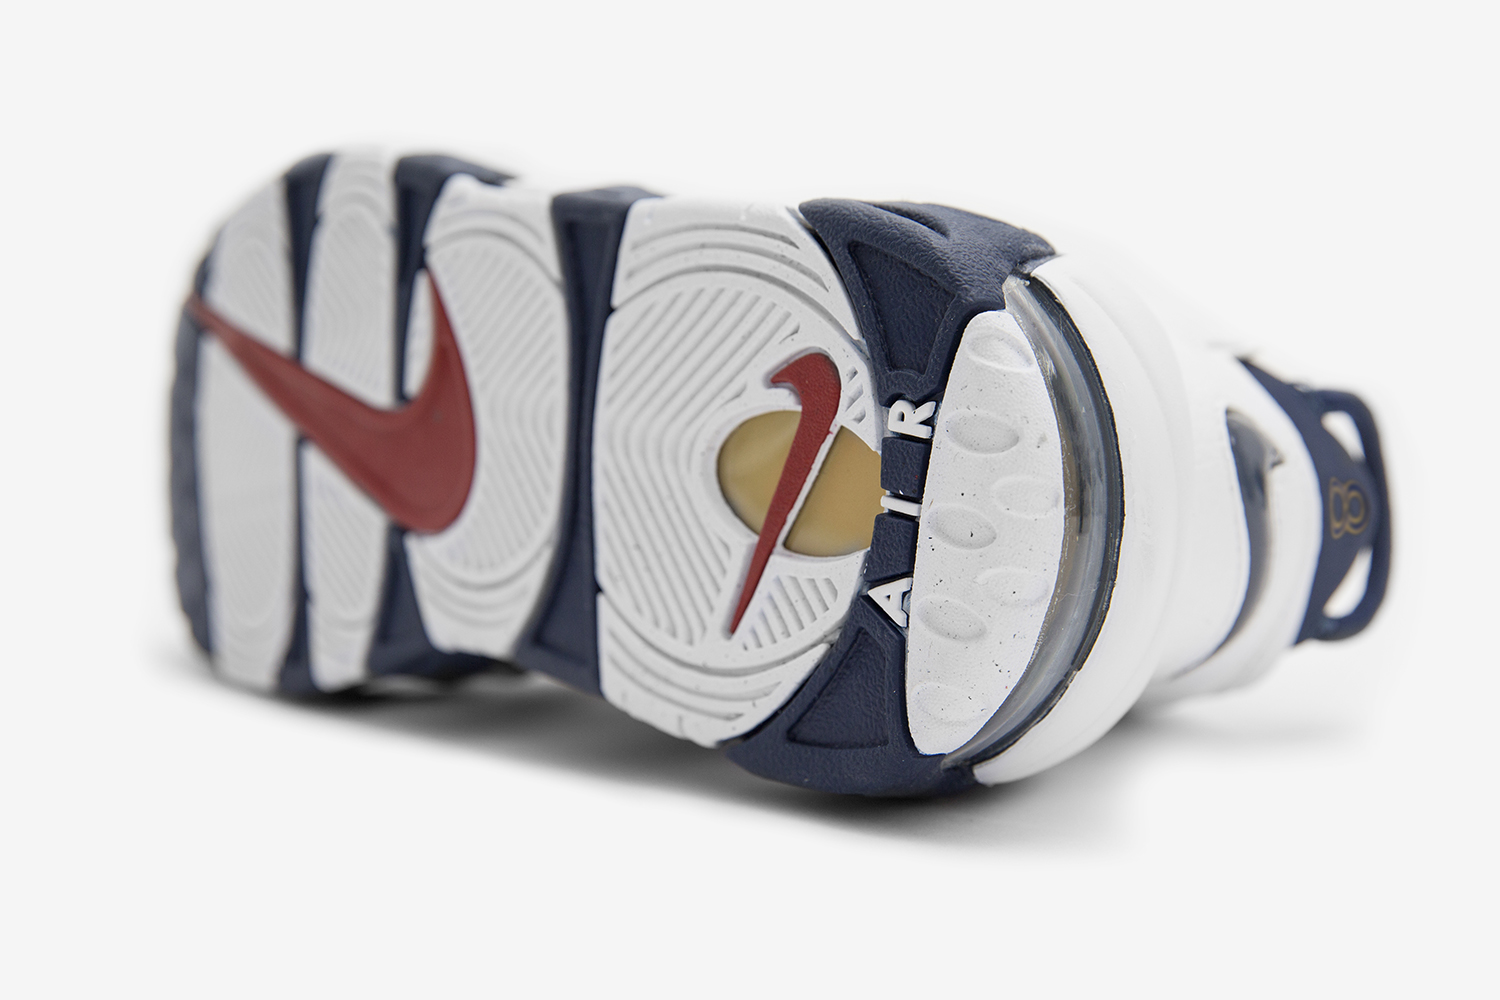 66103f3bff4a nike_air_more_uptempo_navy_olympic_size-6  nike_air_more_uptempo_navy_olympic_size-7 ...